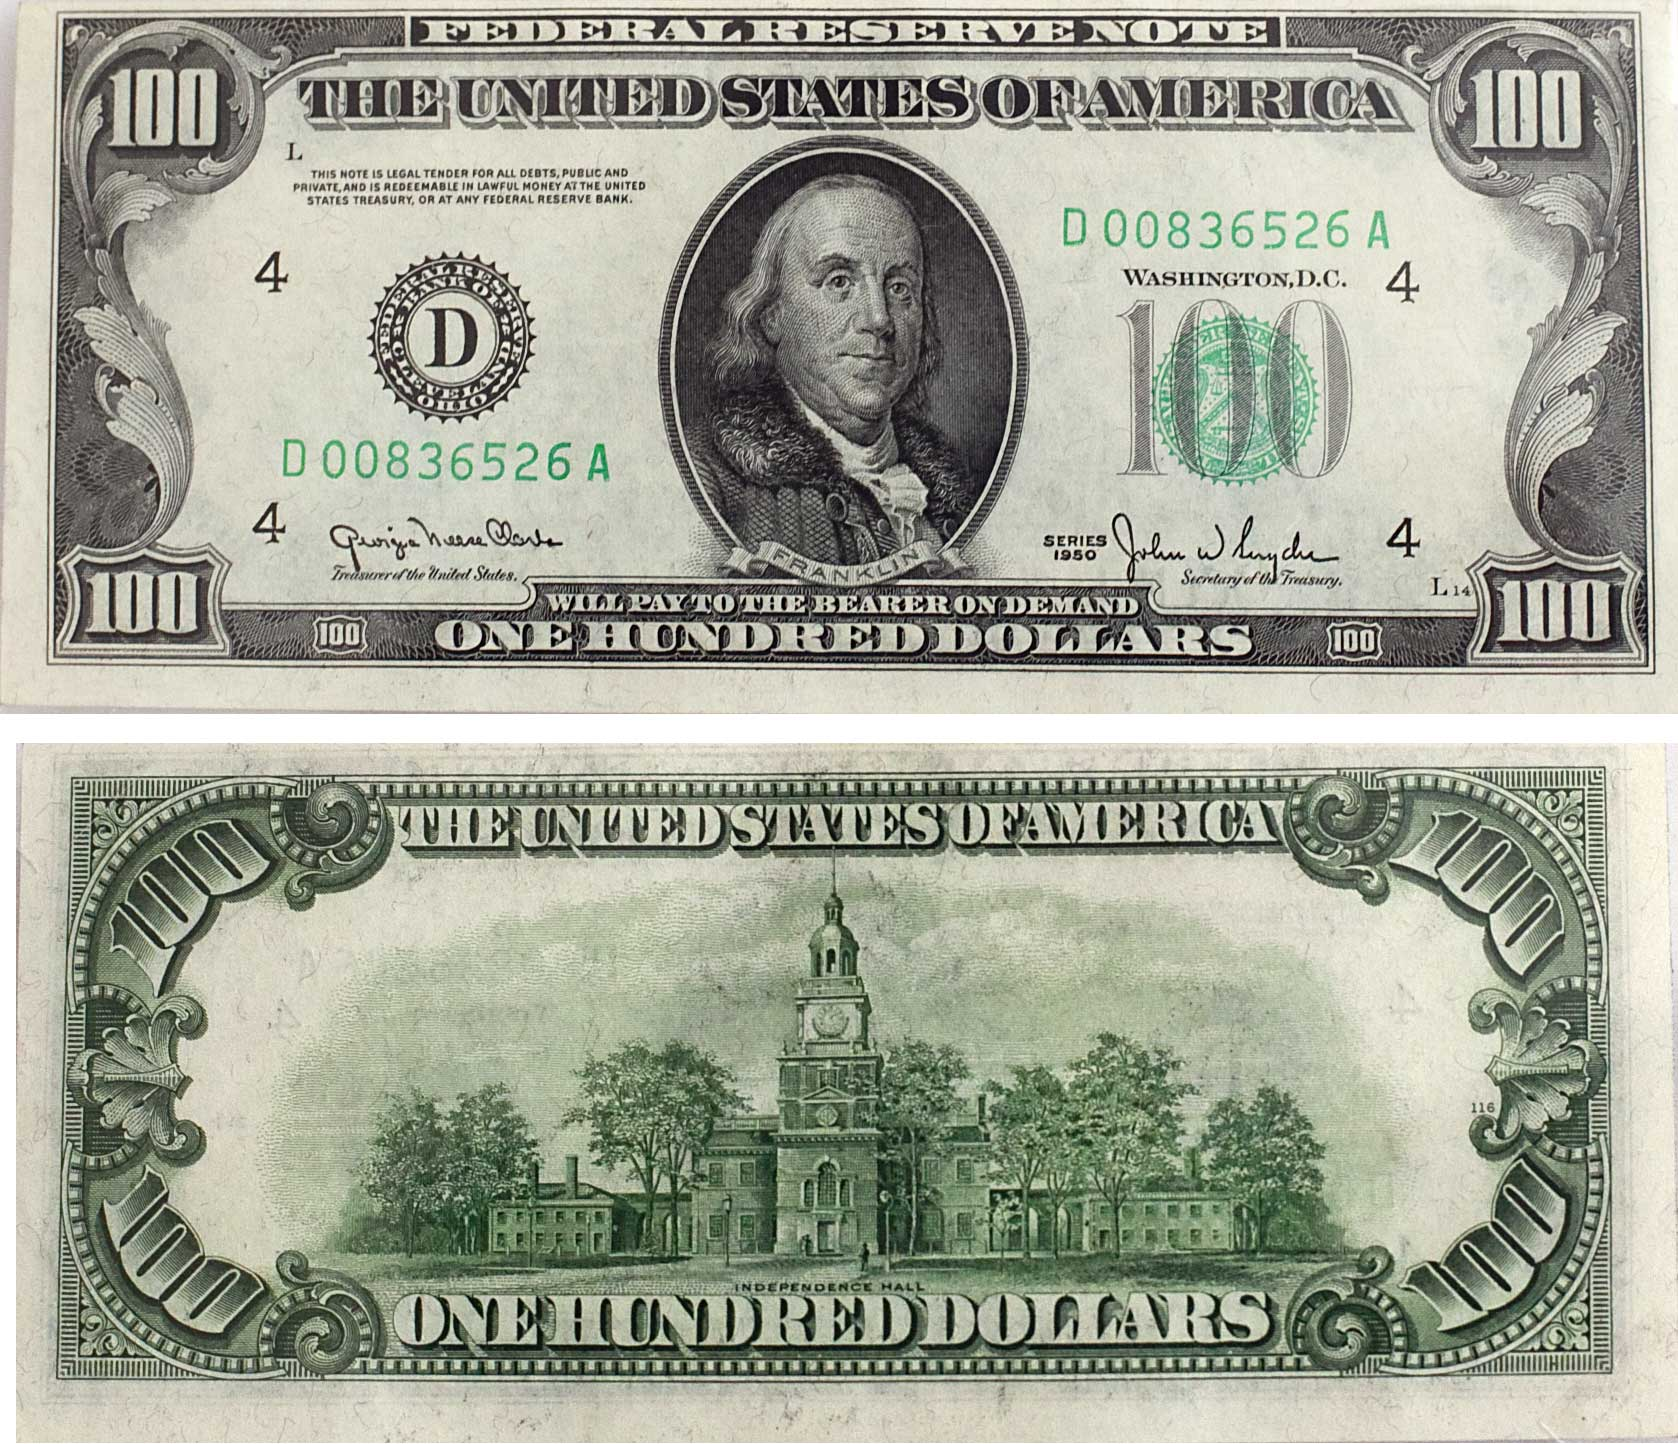 1950 Watermark 100 Bill Dollar